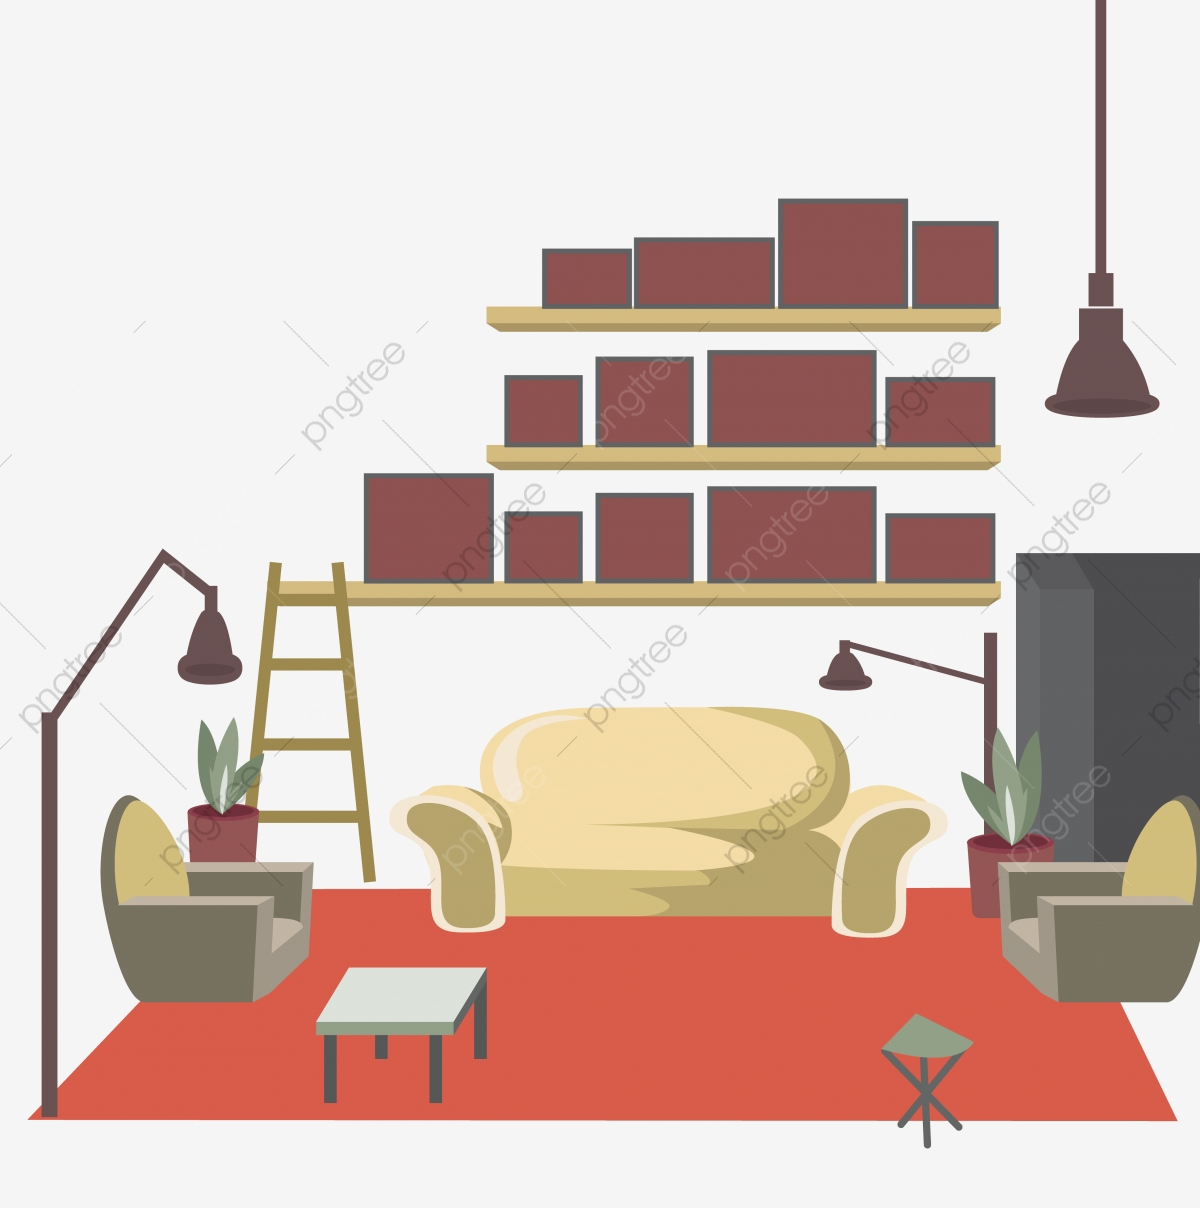 Living Room Background Animated: Hand Drawn Illustration Interior Design Living Room